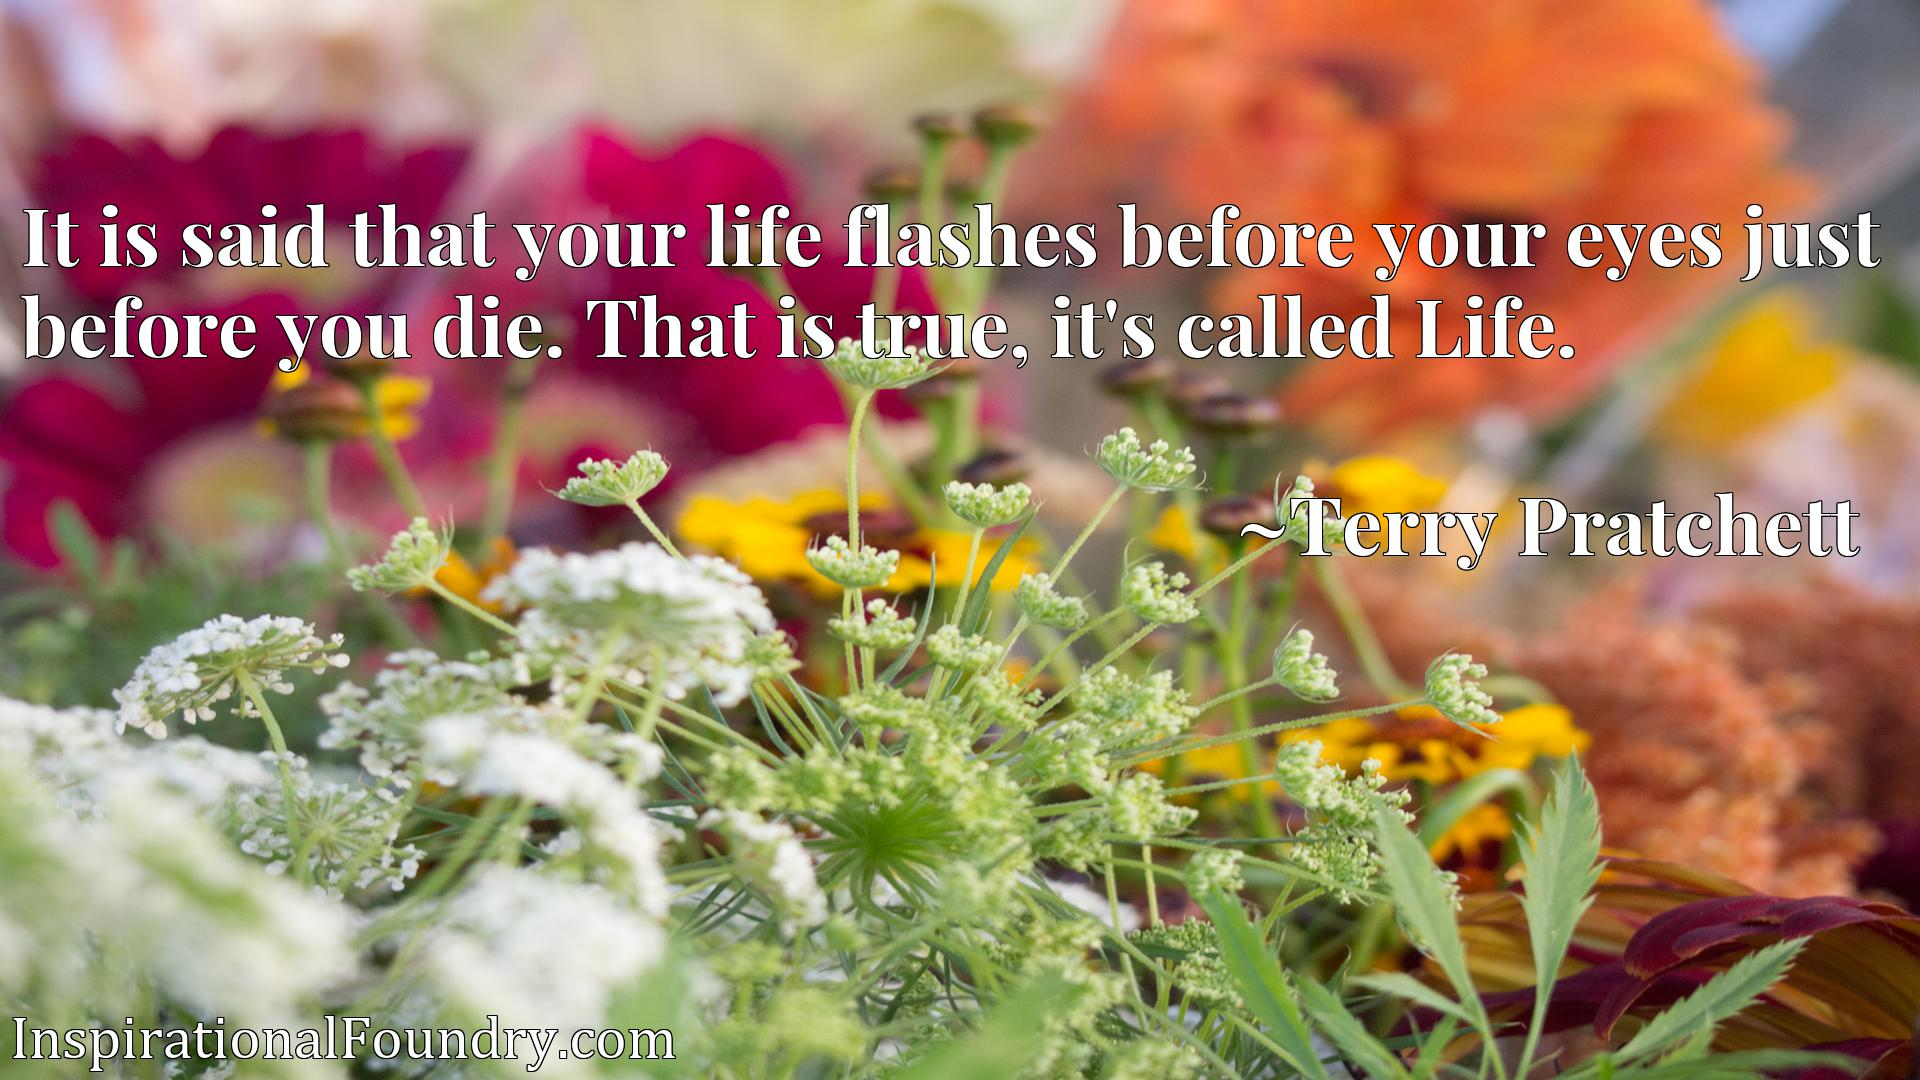 Quote Picture :It is said that your life flashes before your eyes just before you die. That is true, it's called Life.